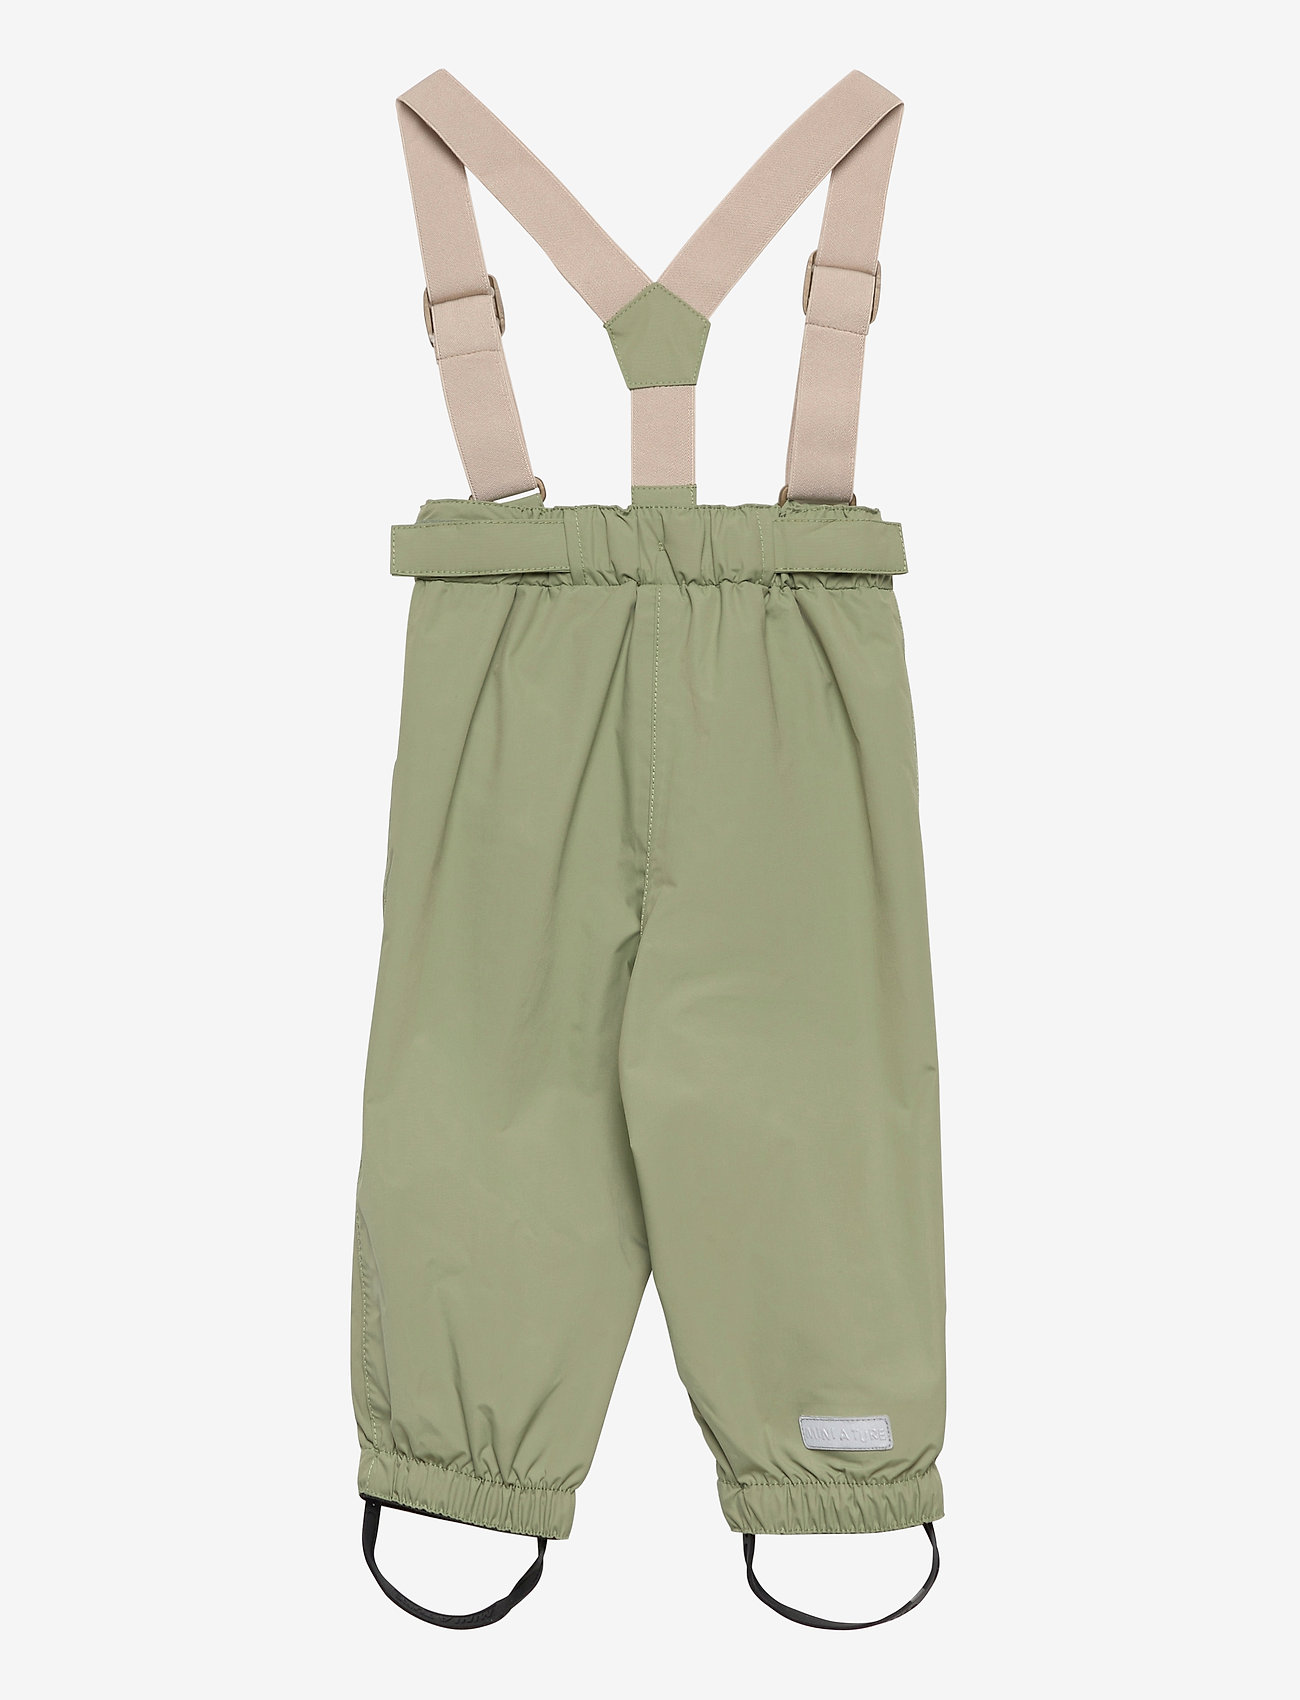 Mini A Ture - Wilans Suspenders Pants, BM - outerwear - oil green - 1